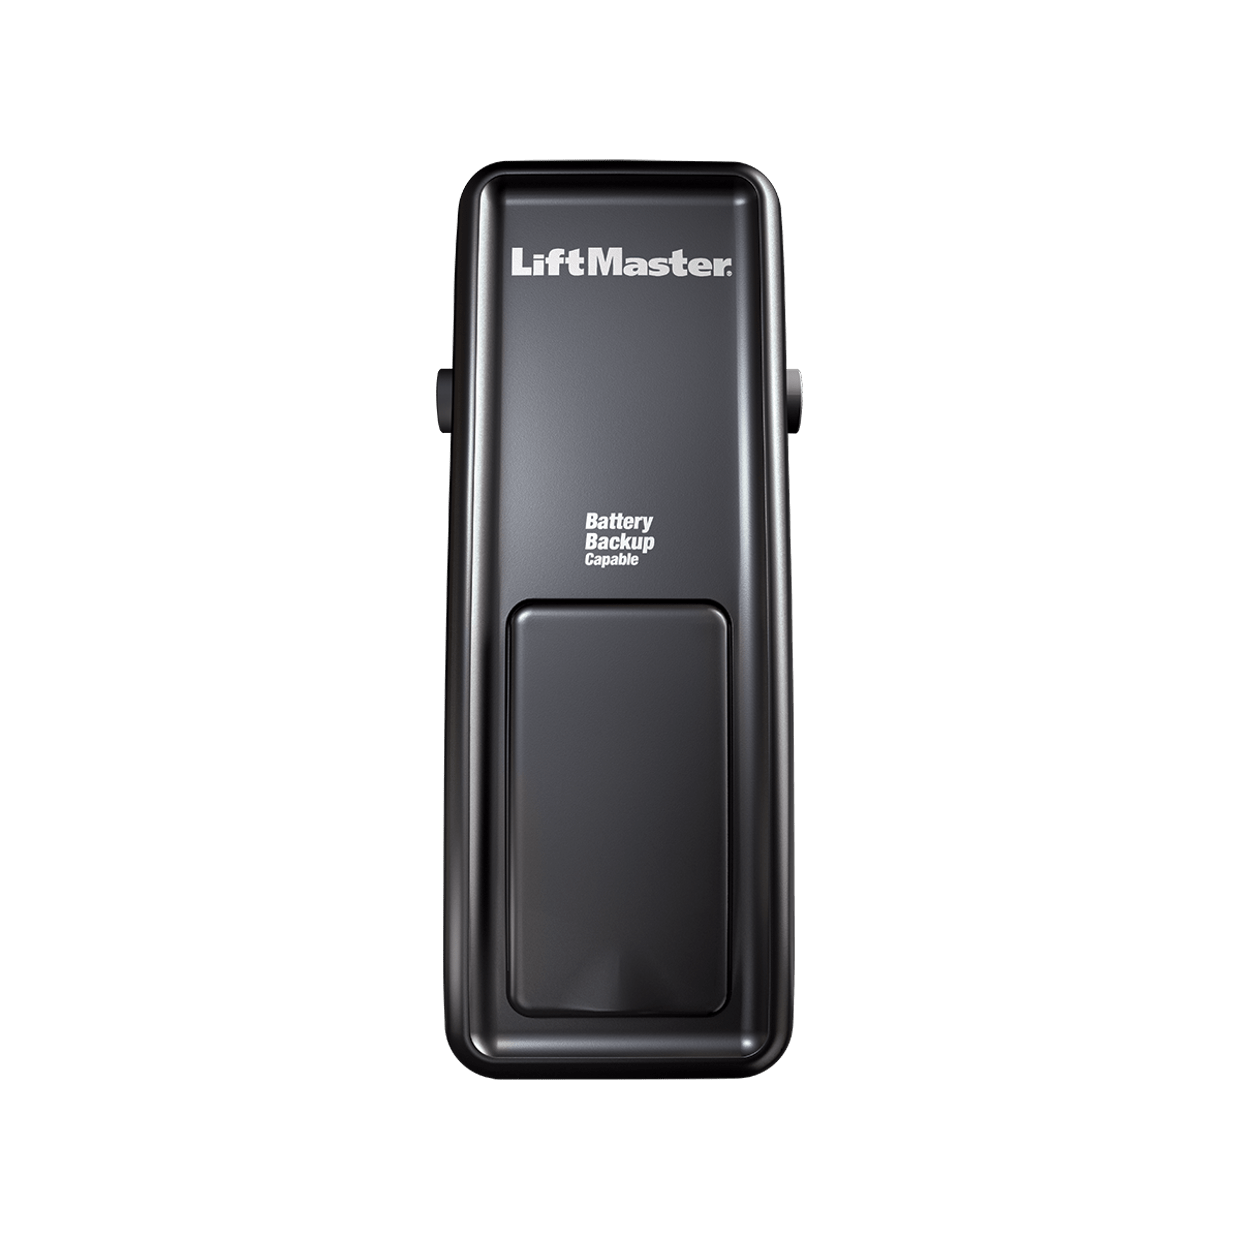 LiftMaster 8500 Residential Garage Door Opener